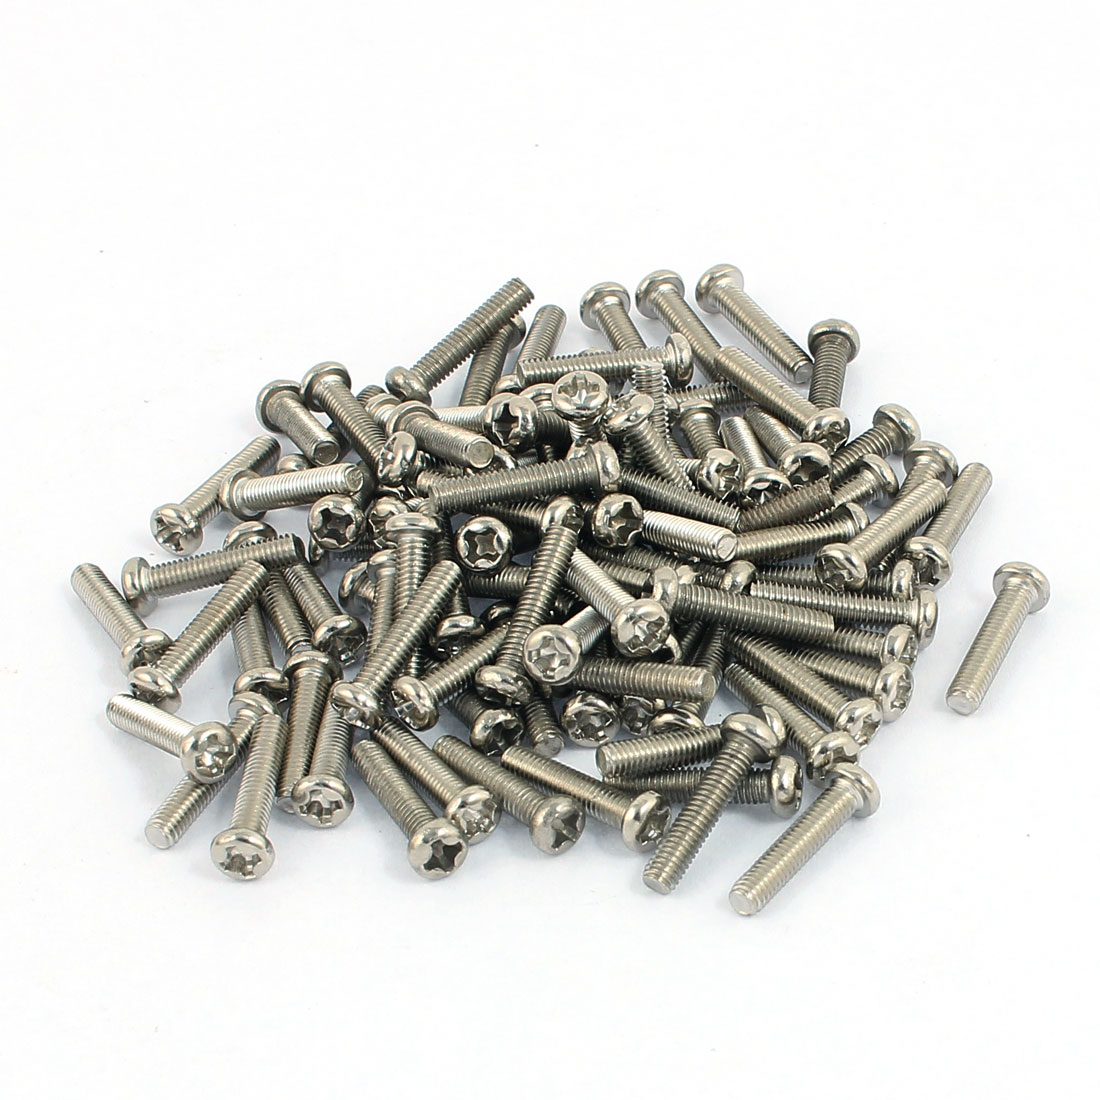 100 Pcs M3x14mm Stainless Steel Round Head Phillips Machine Screws Bolts